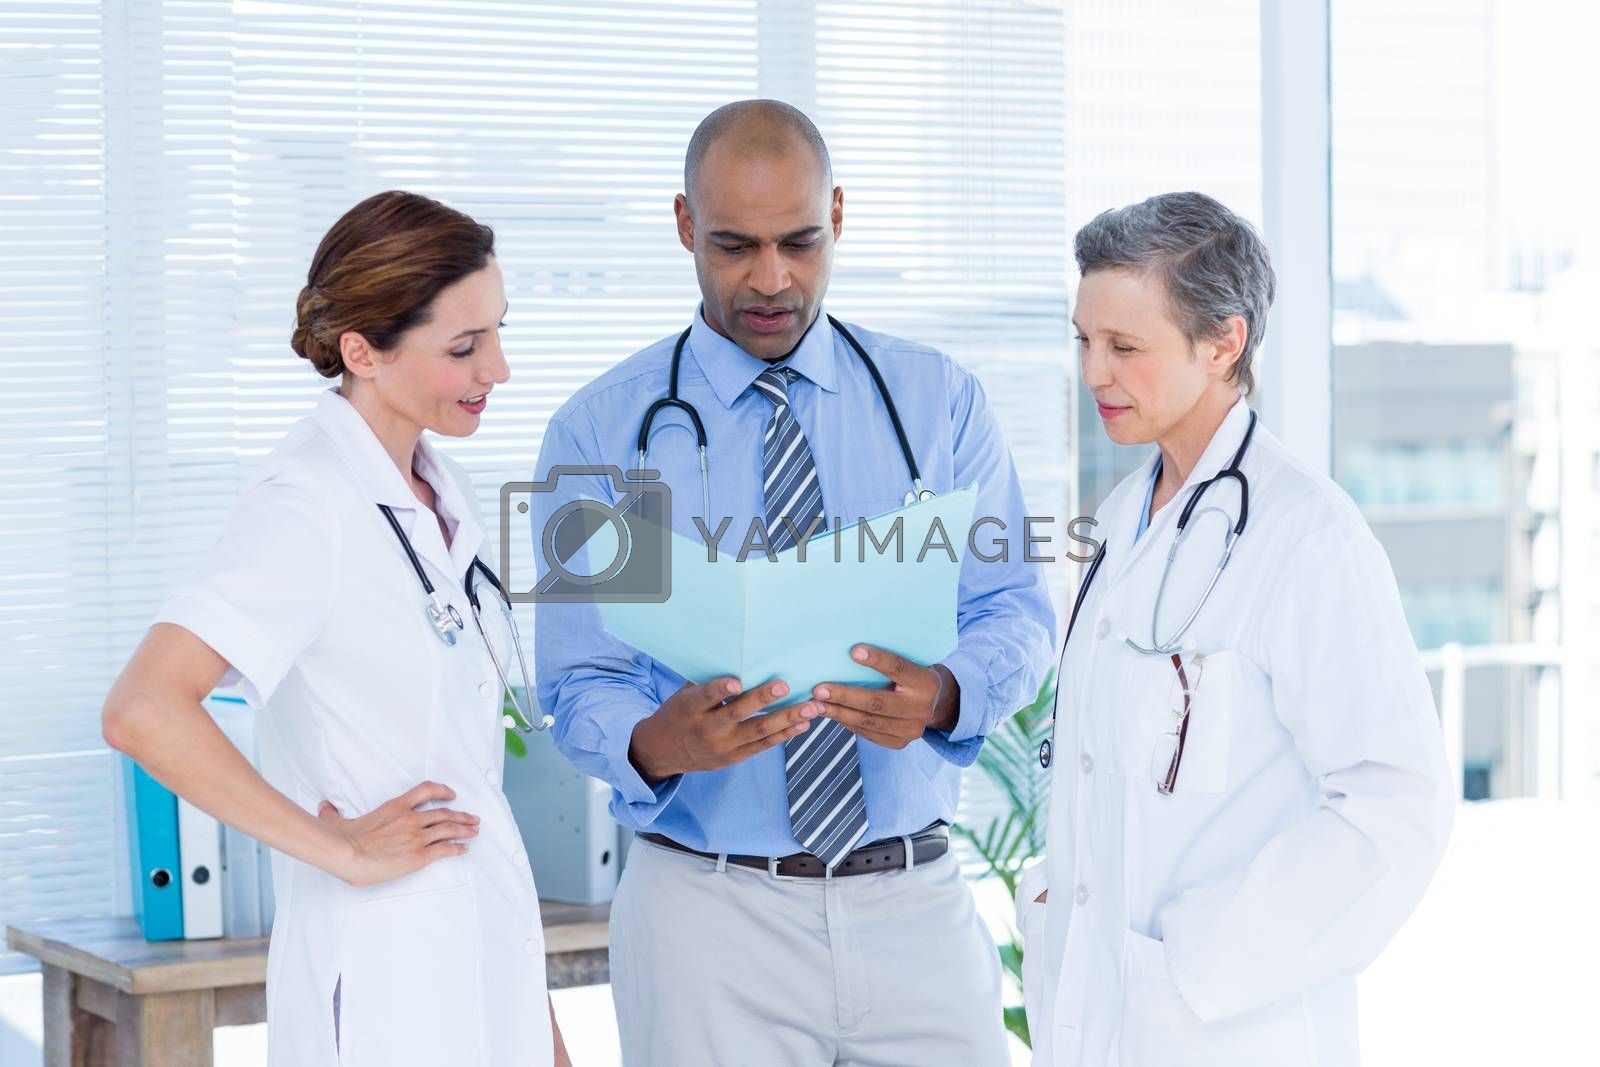 Royalty free image of Concentrated medical colleagues analyzing file together by Wavebreakmedia